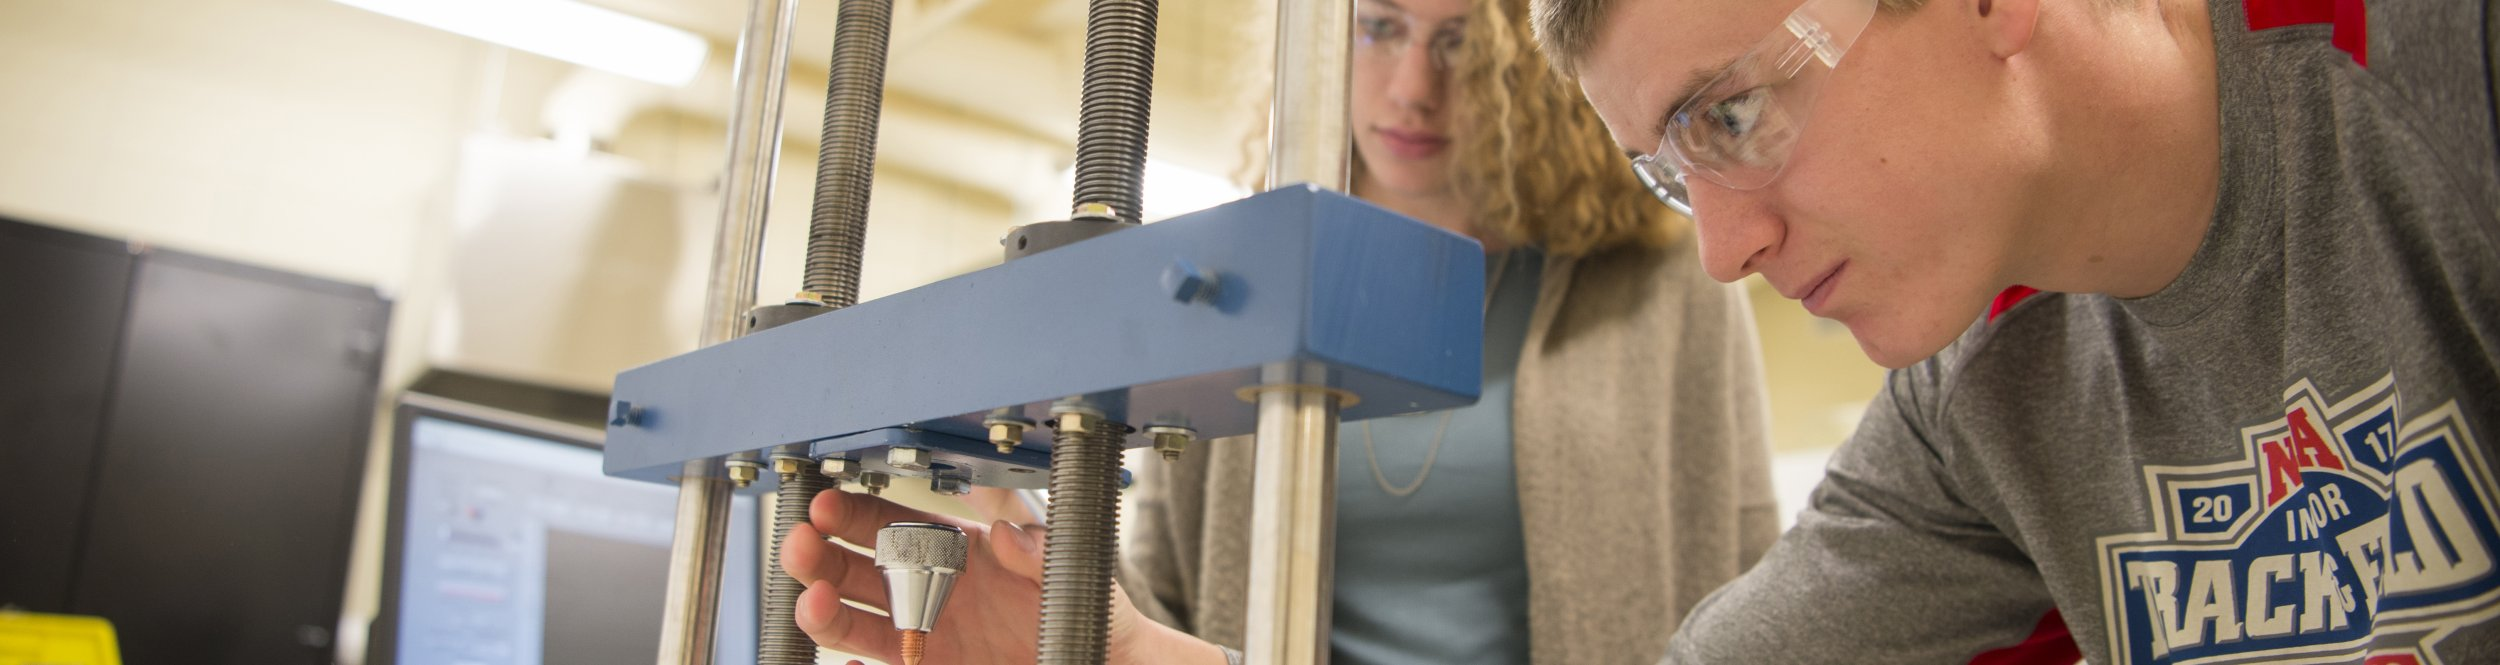 Two engineering students work on a metal device.